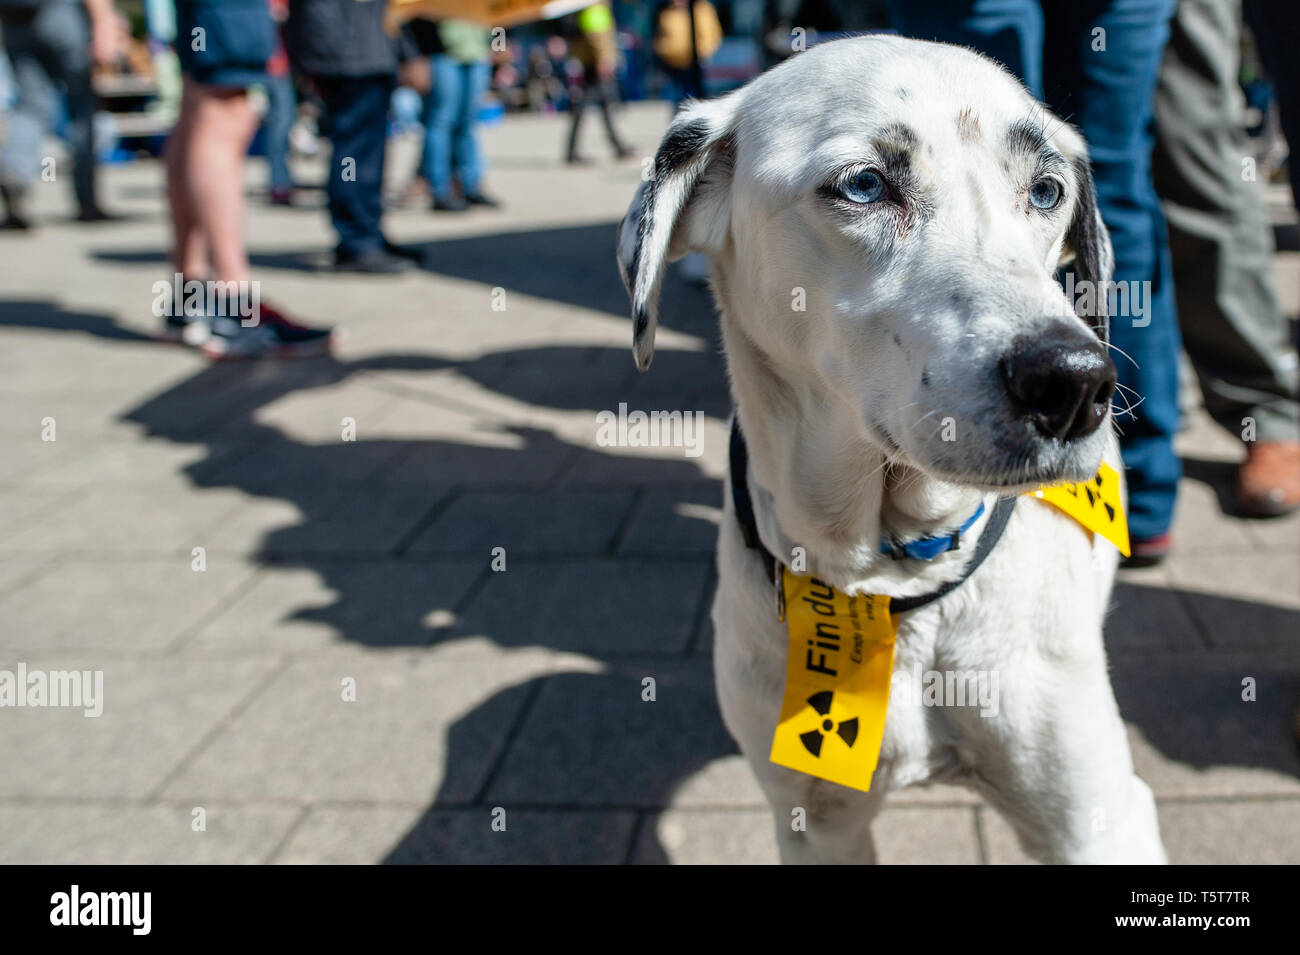 """A dog is seen with anti nuclear stickers during the protest. On the day that commemorates the 33rd anniversary of the Chernobyl nuclear disaster, a protest was organized by the """"Fin du nucléaire"""" and Réveil Anti-Nucléaire"""" associations, as well as director Bouli Lanners. They want the five most dangerous Belgian reactors to be shut down. - Stock Image"""